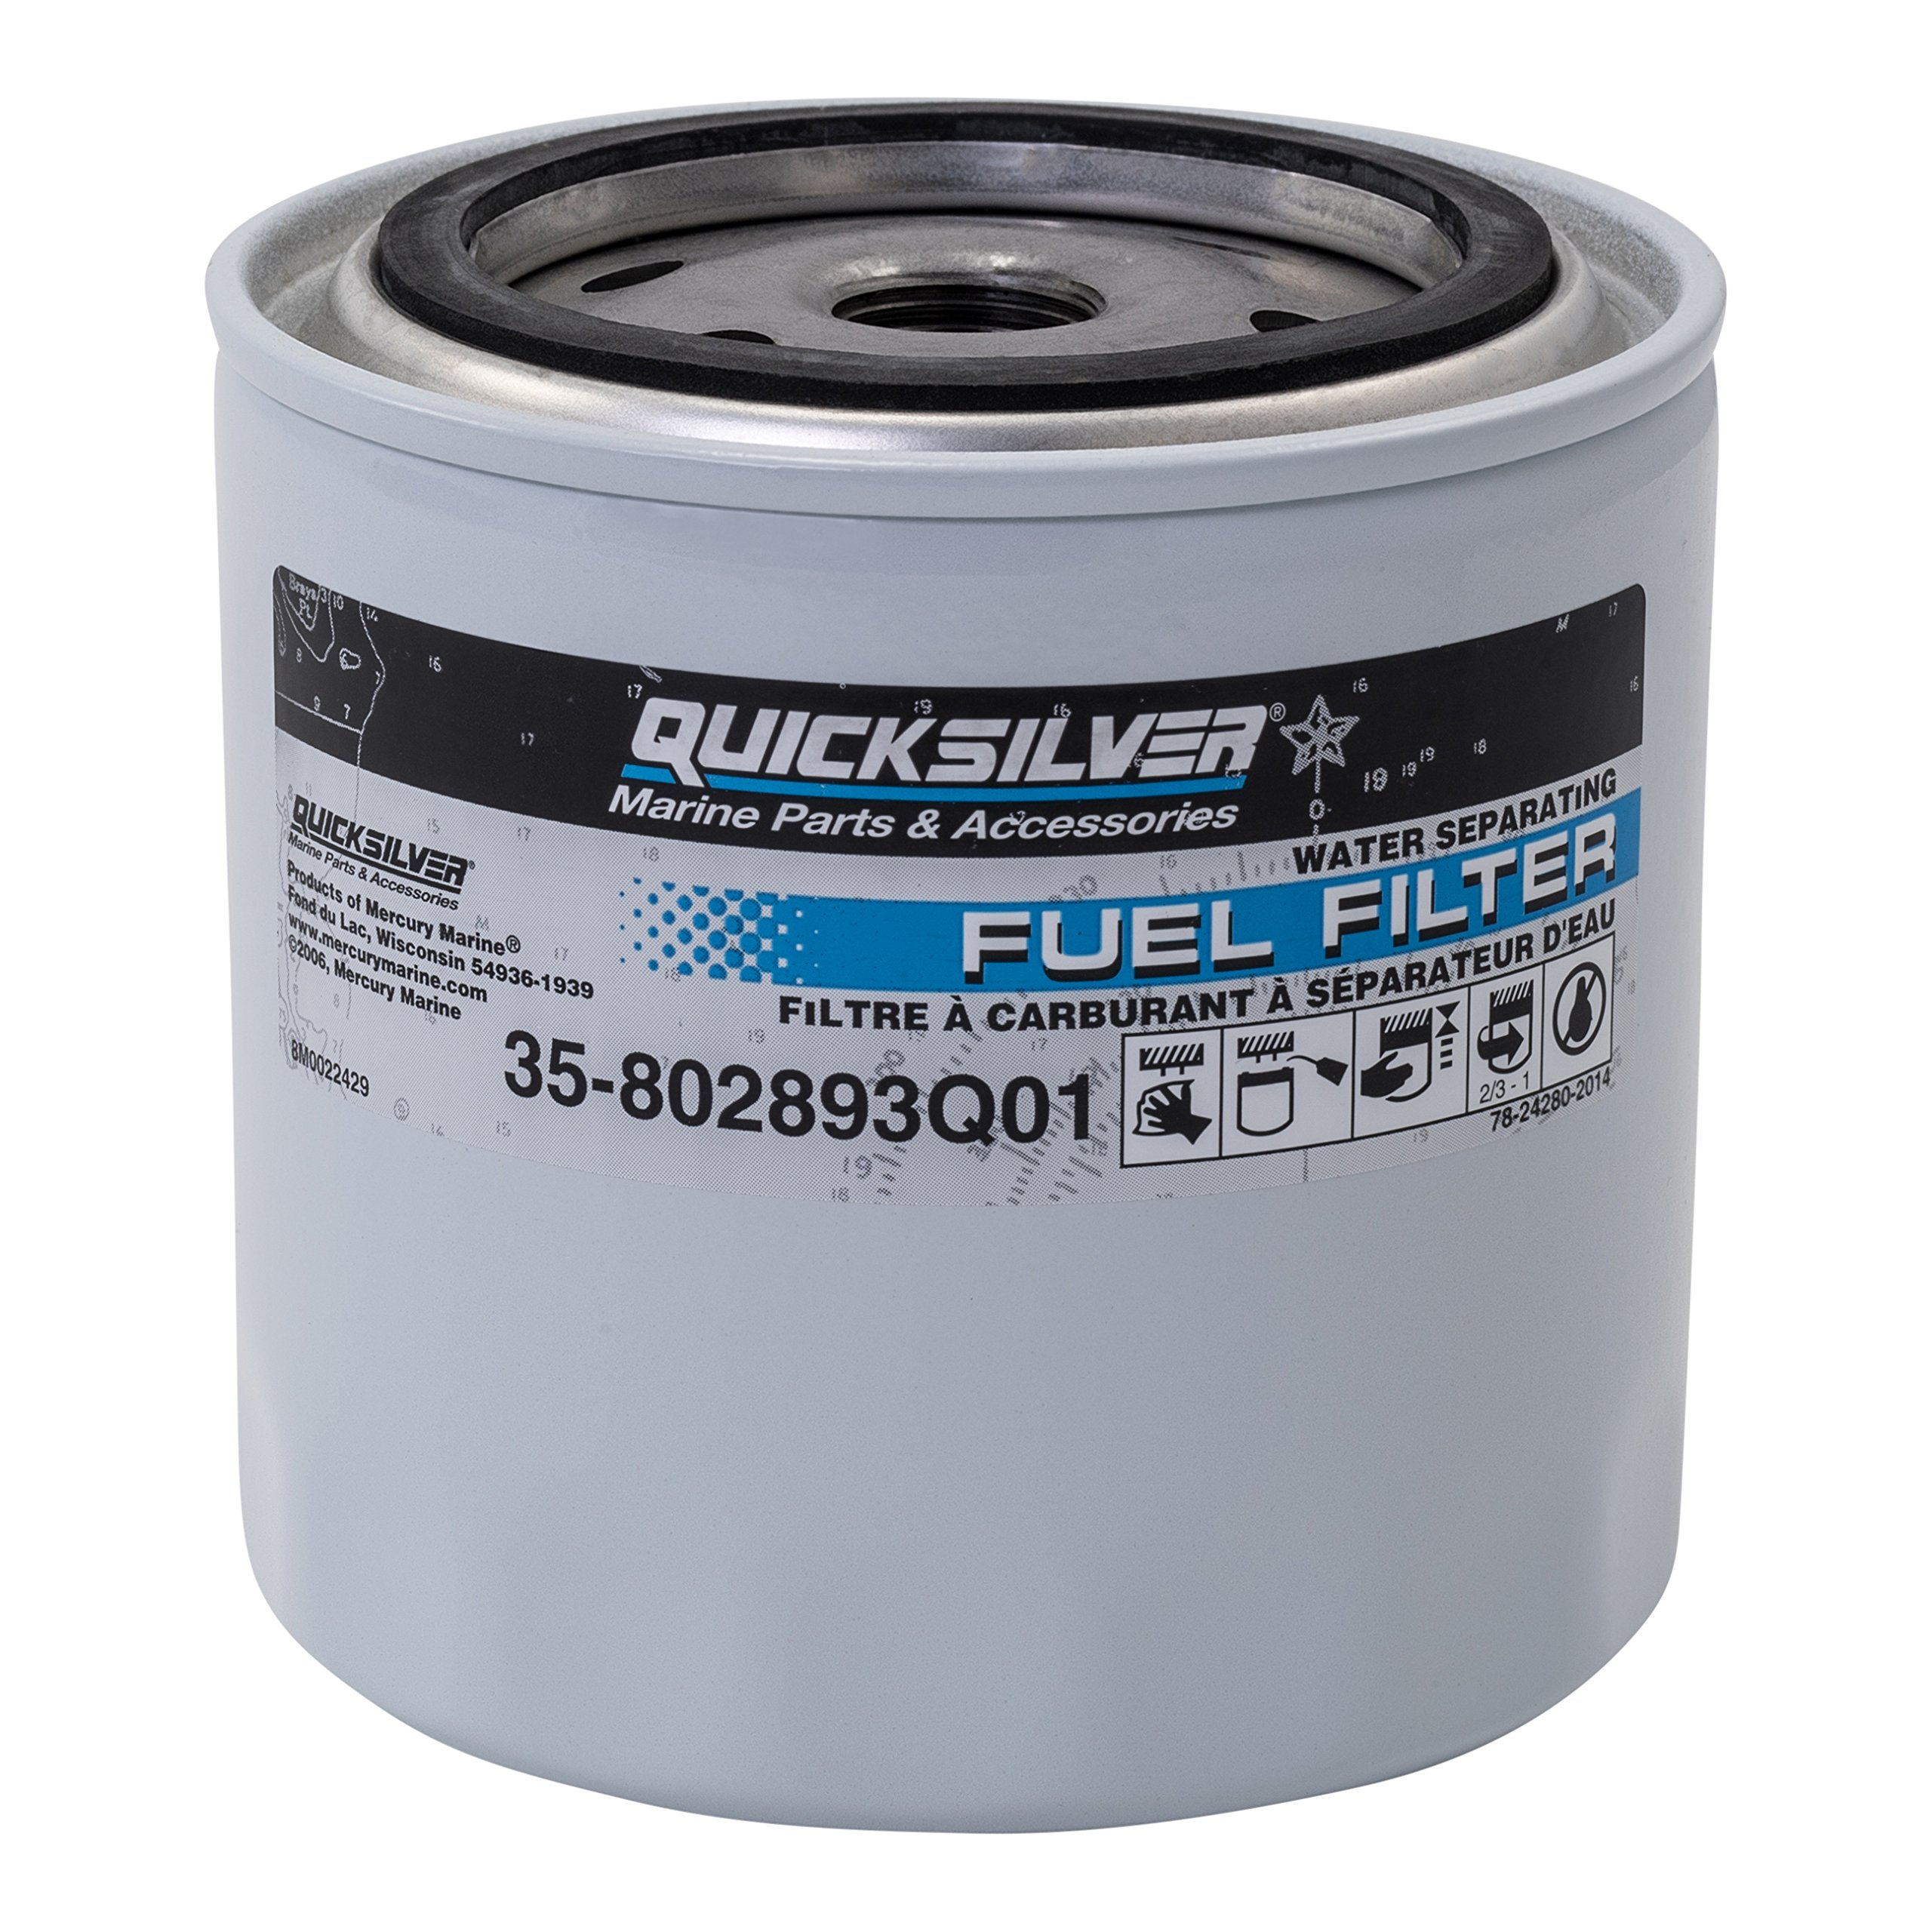 802893q01 Fuel Water Separating Filter Quicksilver 1999 Ranger Mercury Boat Filters Sports Outdoors